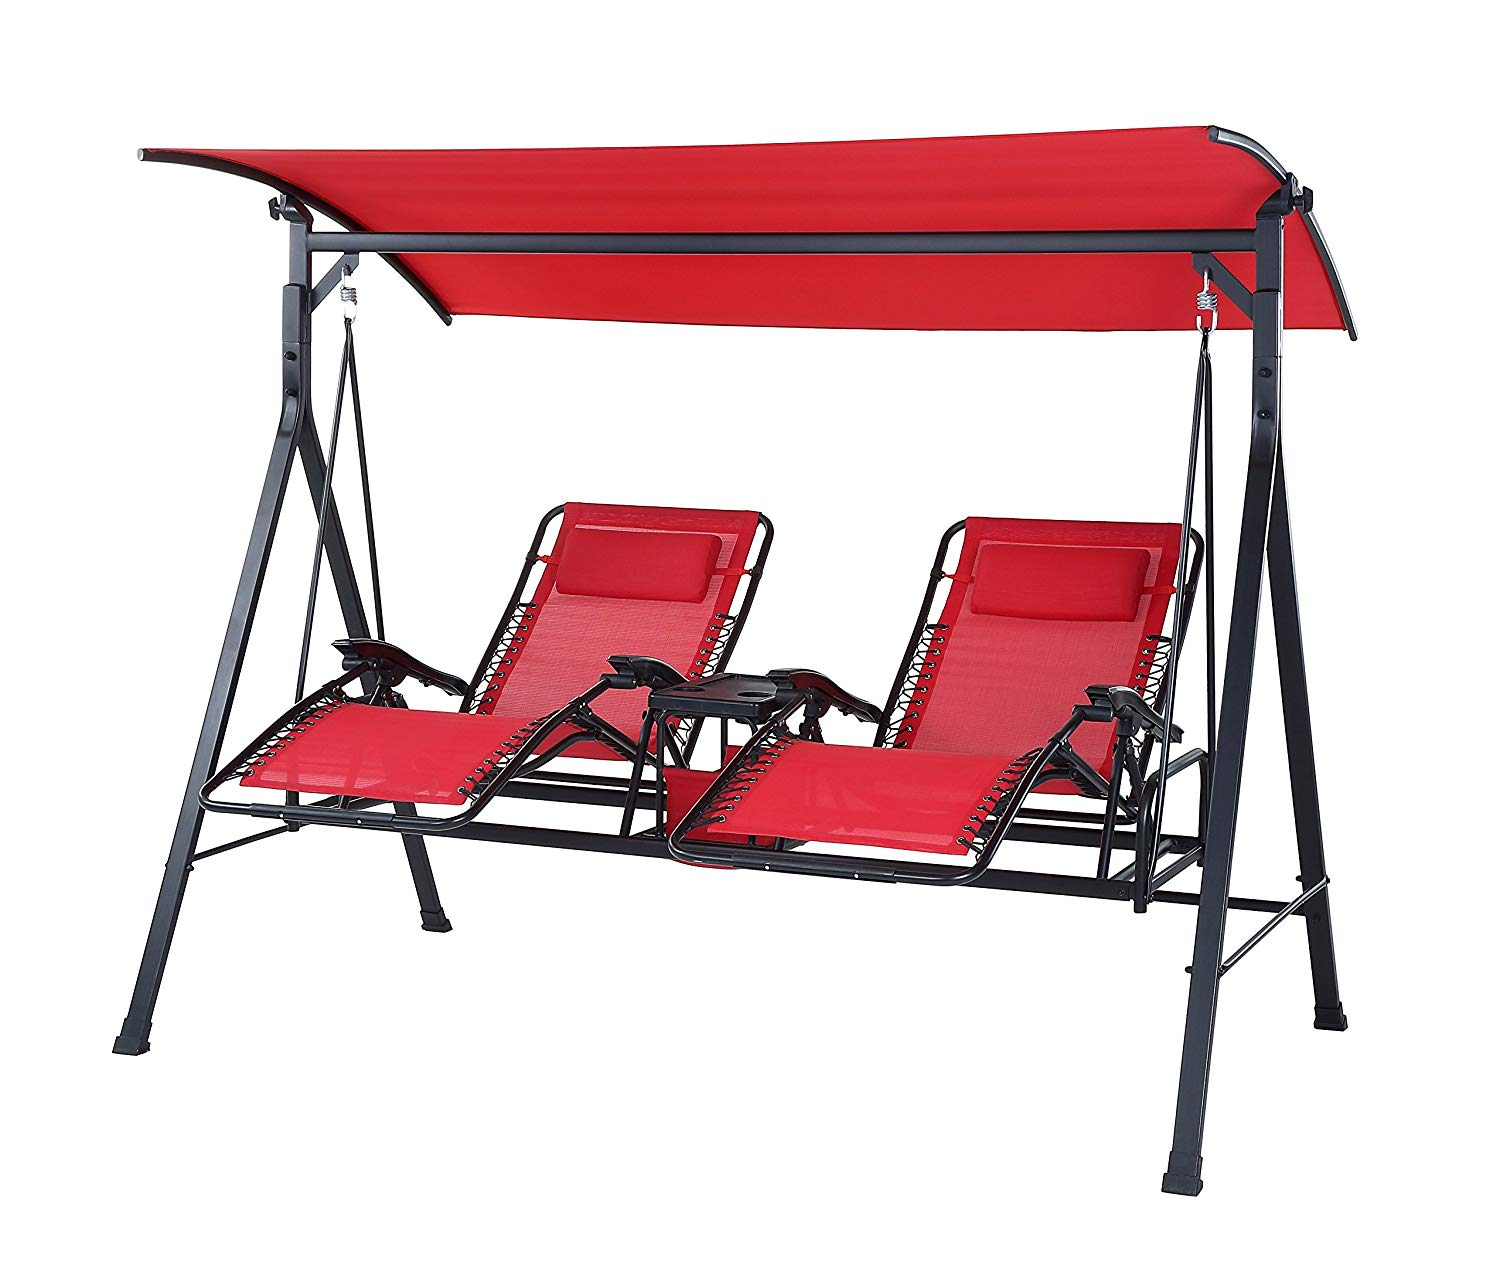 Best Outdoor Reclining Zero Gravity Swing [2020 Update Intended For Canopy Patio Porch Swings With Pillows And Cup Holders (View 9 of 25)